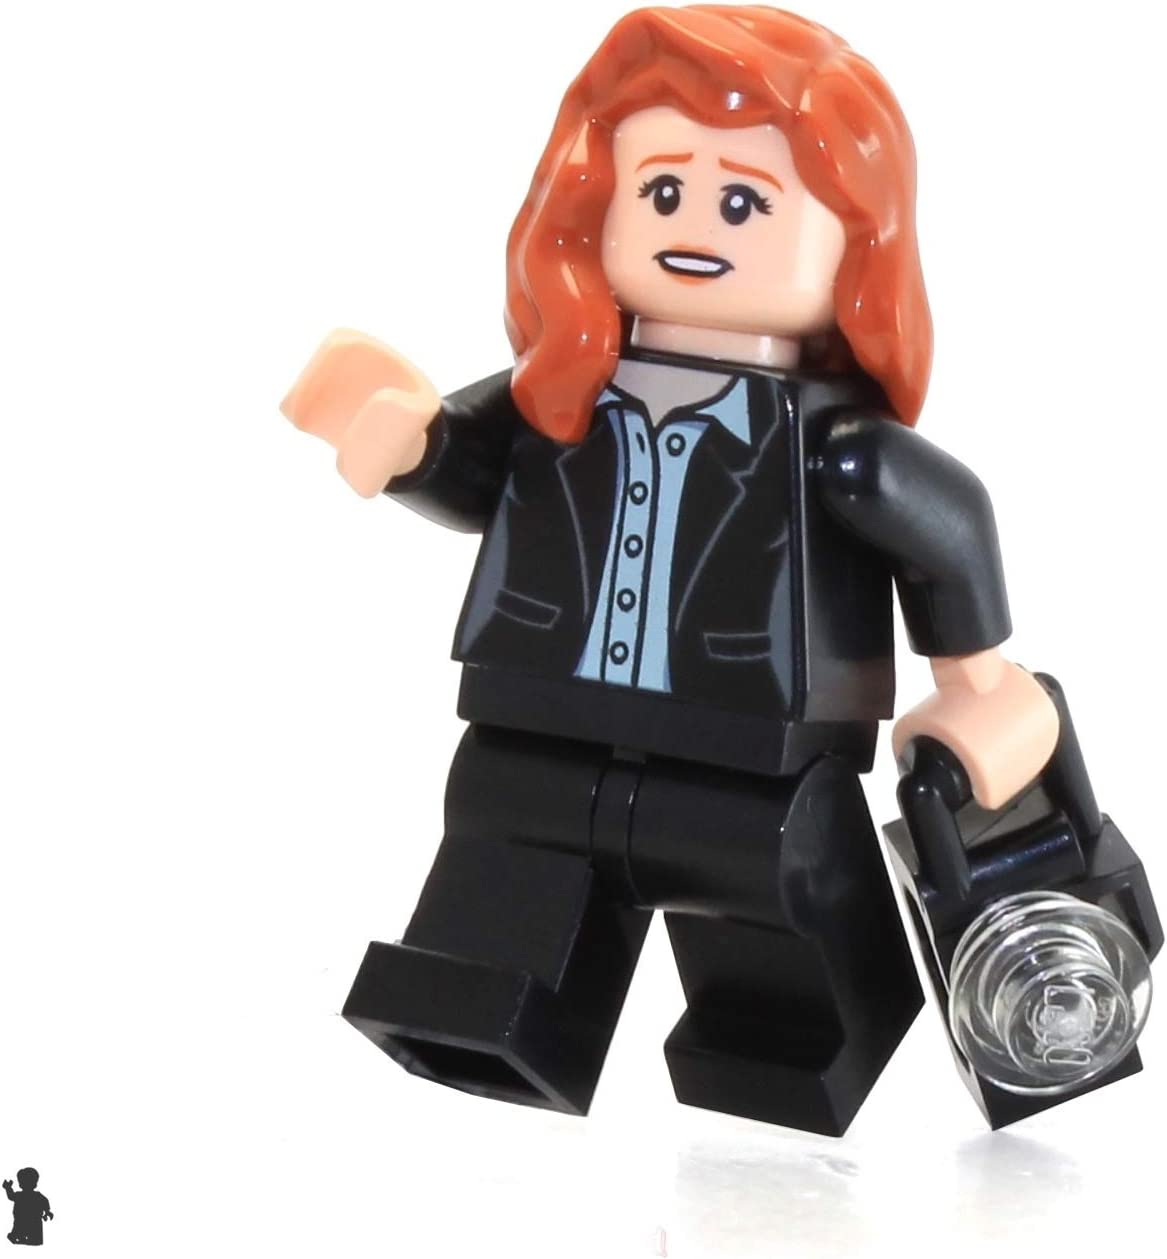 LEGO Heroes of Justice DC Comics Super Heroes - Lois Lane with Camera